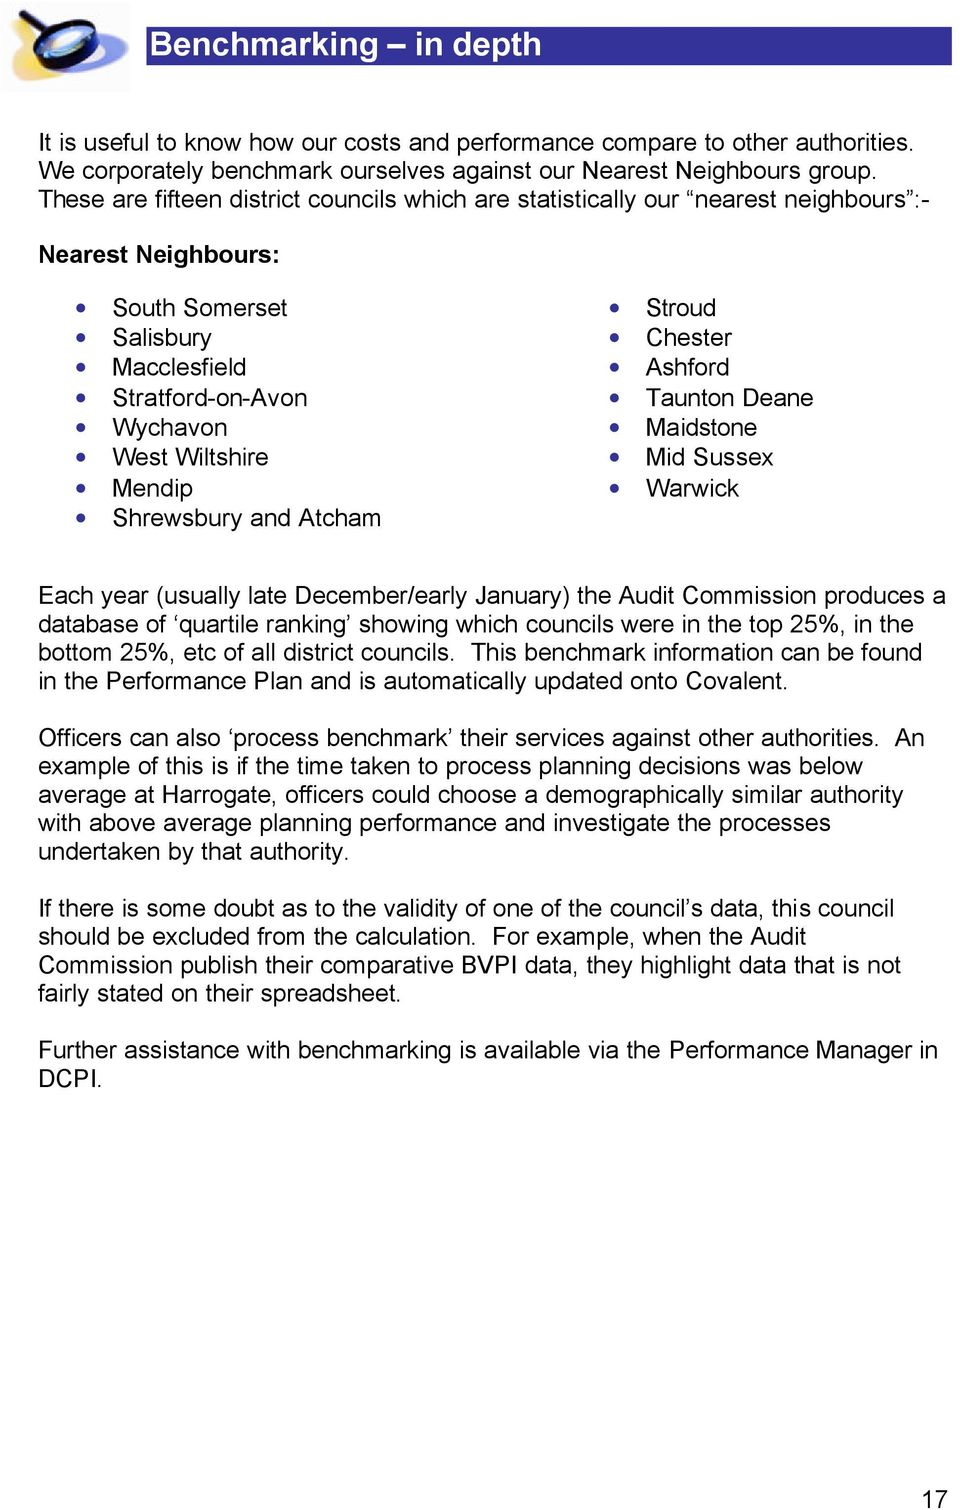 Shrewsbury and Atcham Stroud Chester Ashford Taunton Deane Maidstone Mid Sussex Warwick Each year (usually late December/early January) the Audit Commission produces a database of quartile ranking